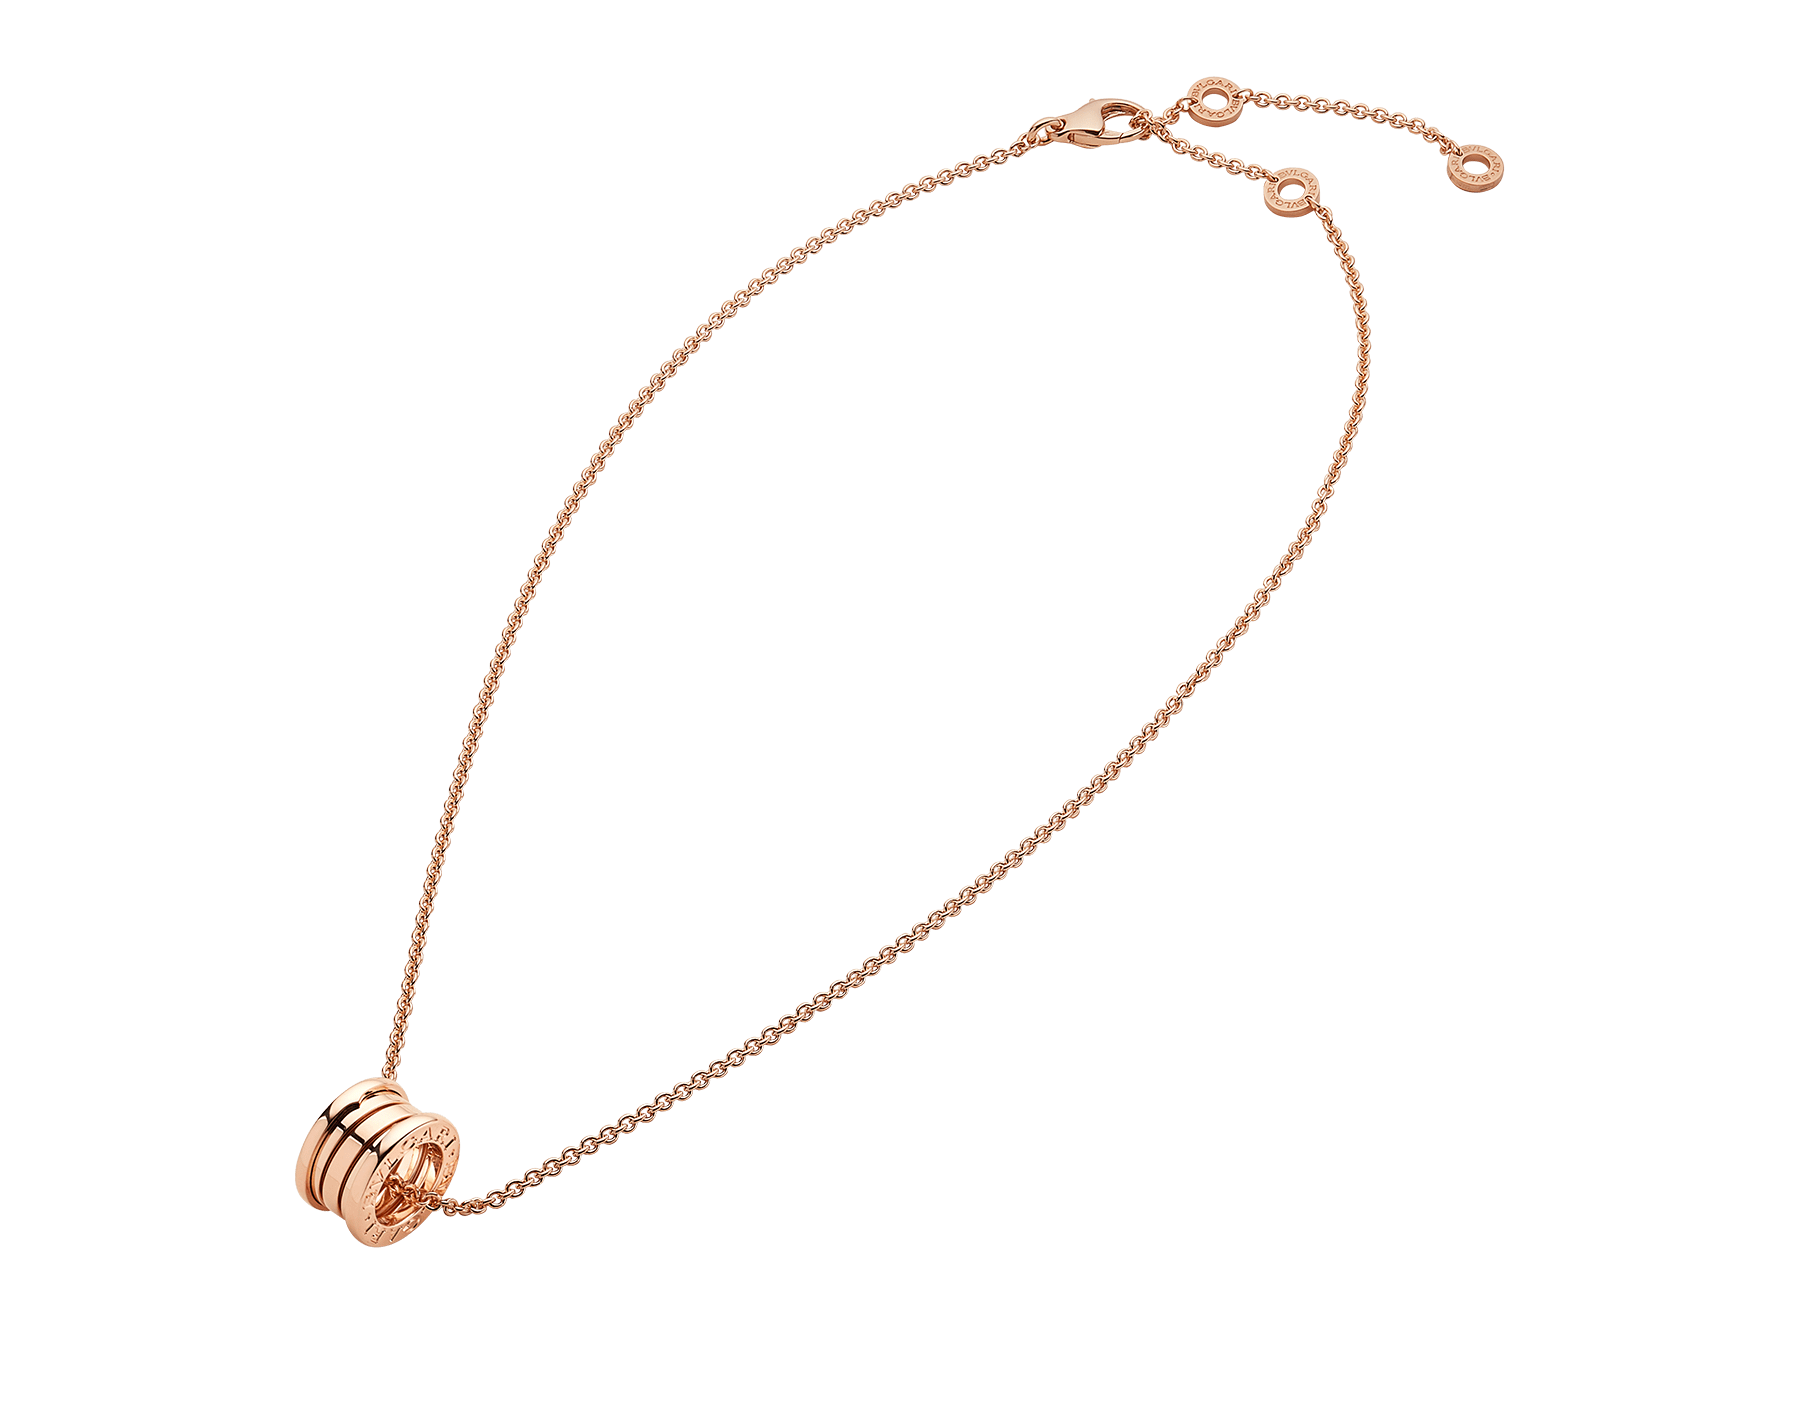 B.zero1 necklace with chain and small round pendant in 18kt rose gold. 335924 image 2